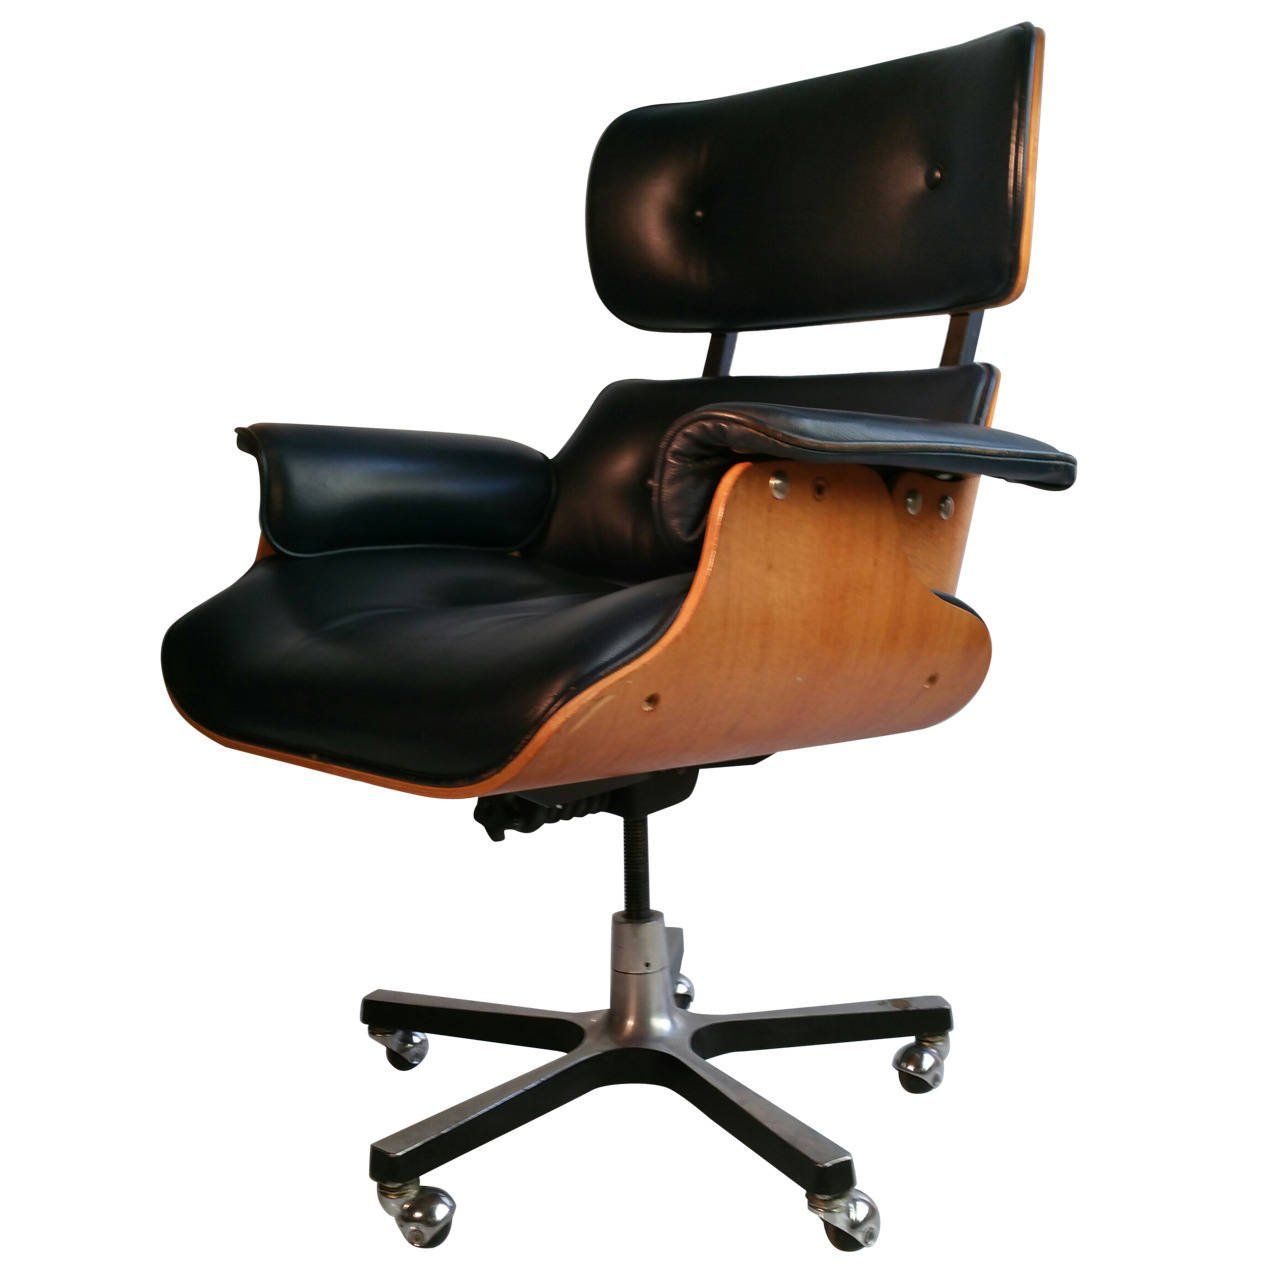 Modernist Eames Style Leather Desk Chair | From a unique collection of antique and modern office chairs and desk chairs at ...  sc 1 st  Pinterest & Modernist Eames Style Leather Desk Chair | home decoration ...